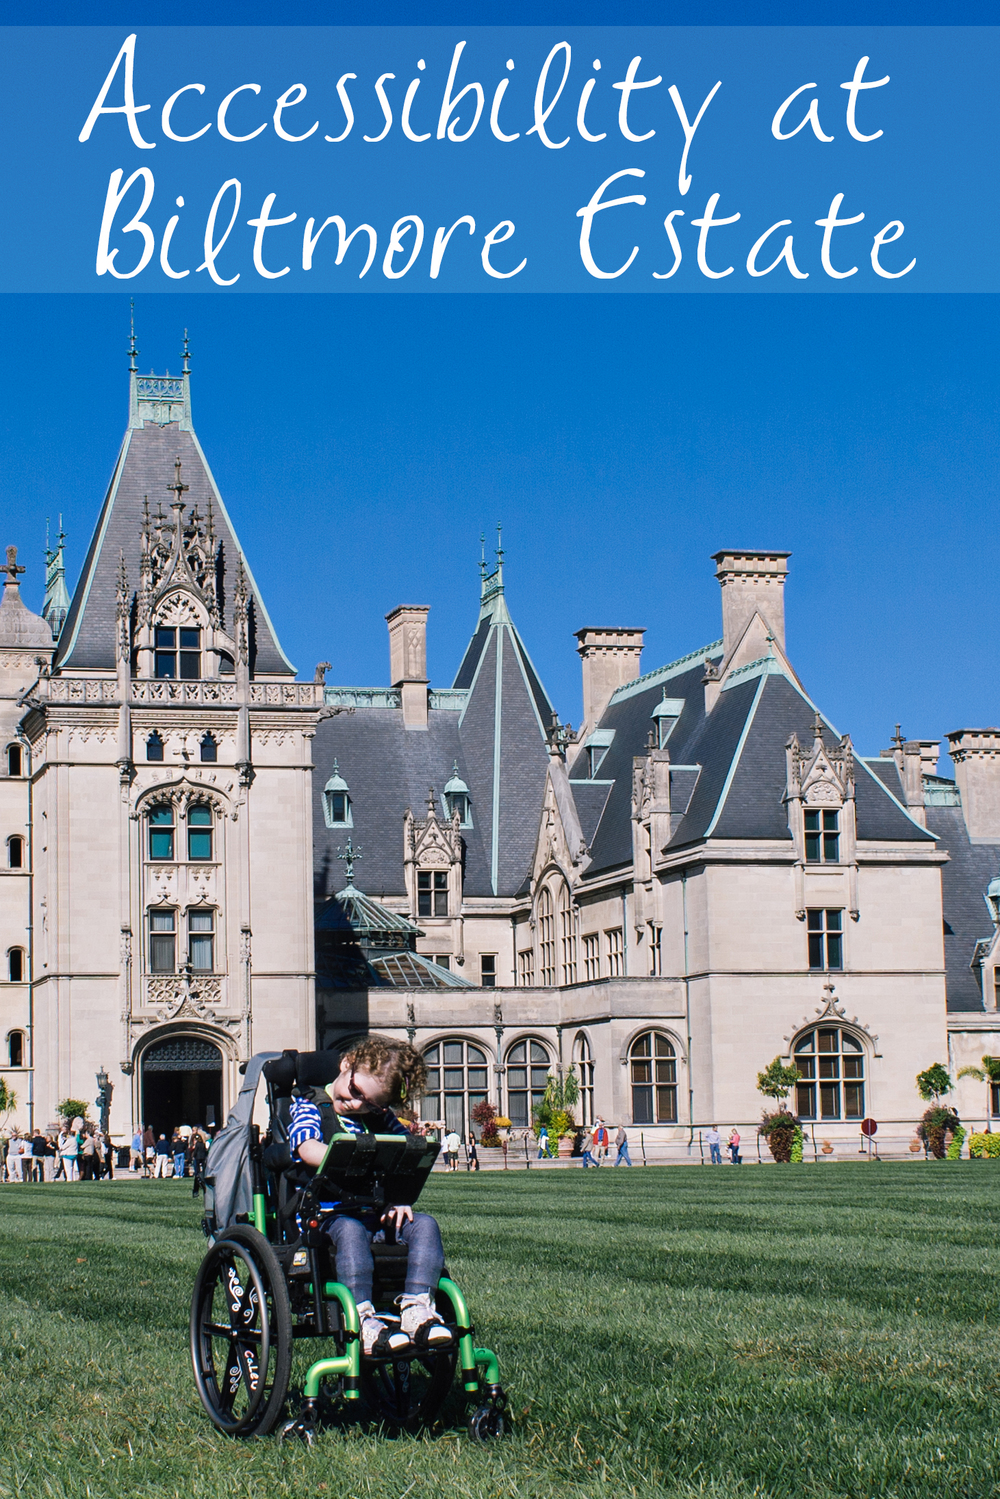 The Biltmore Estate Accessibility Asheville North Carolina